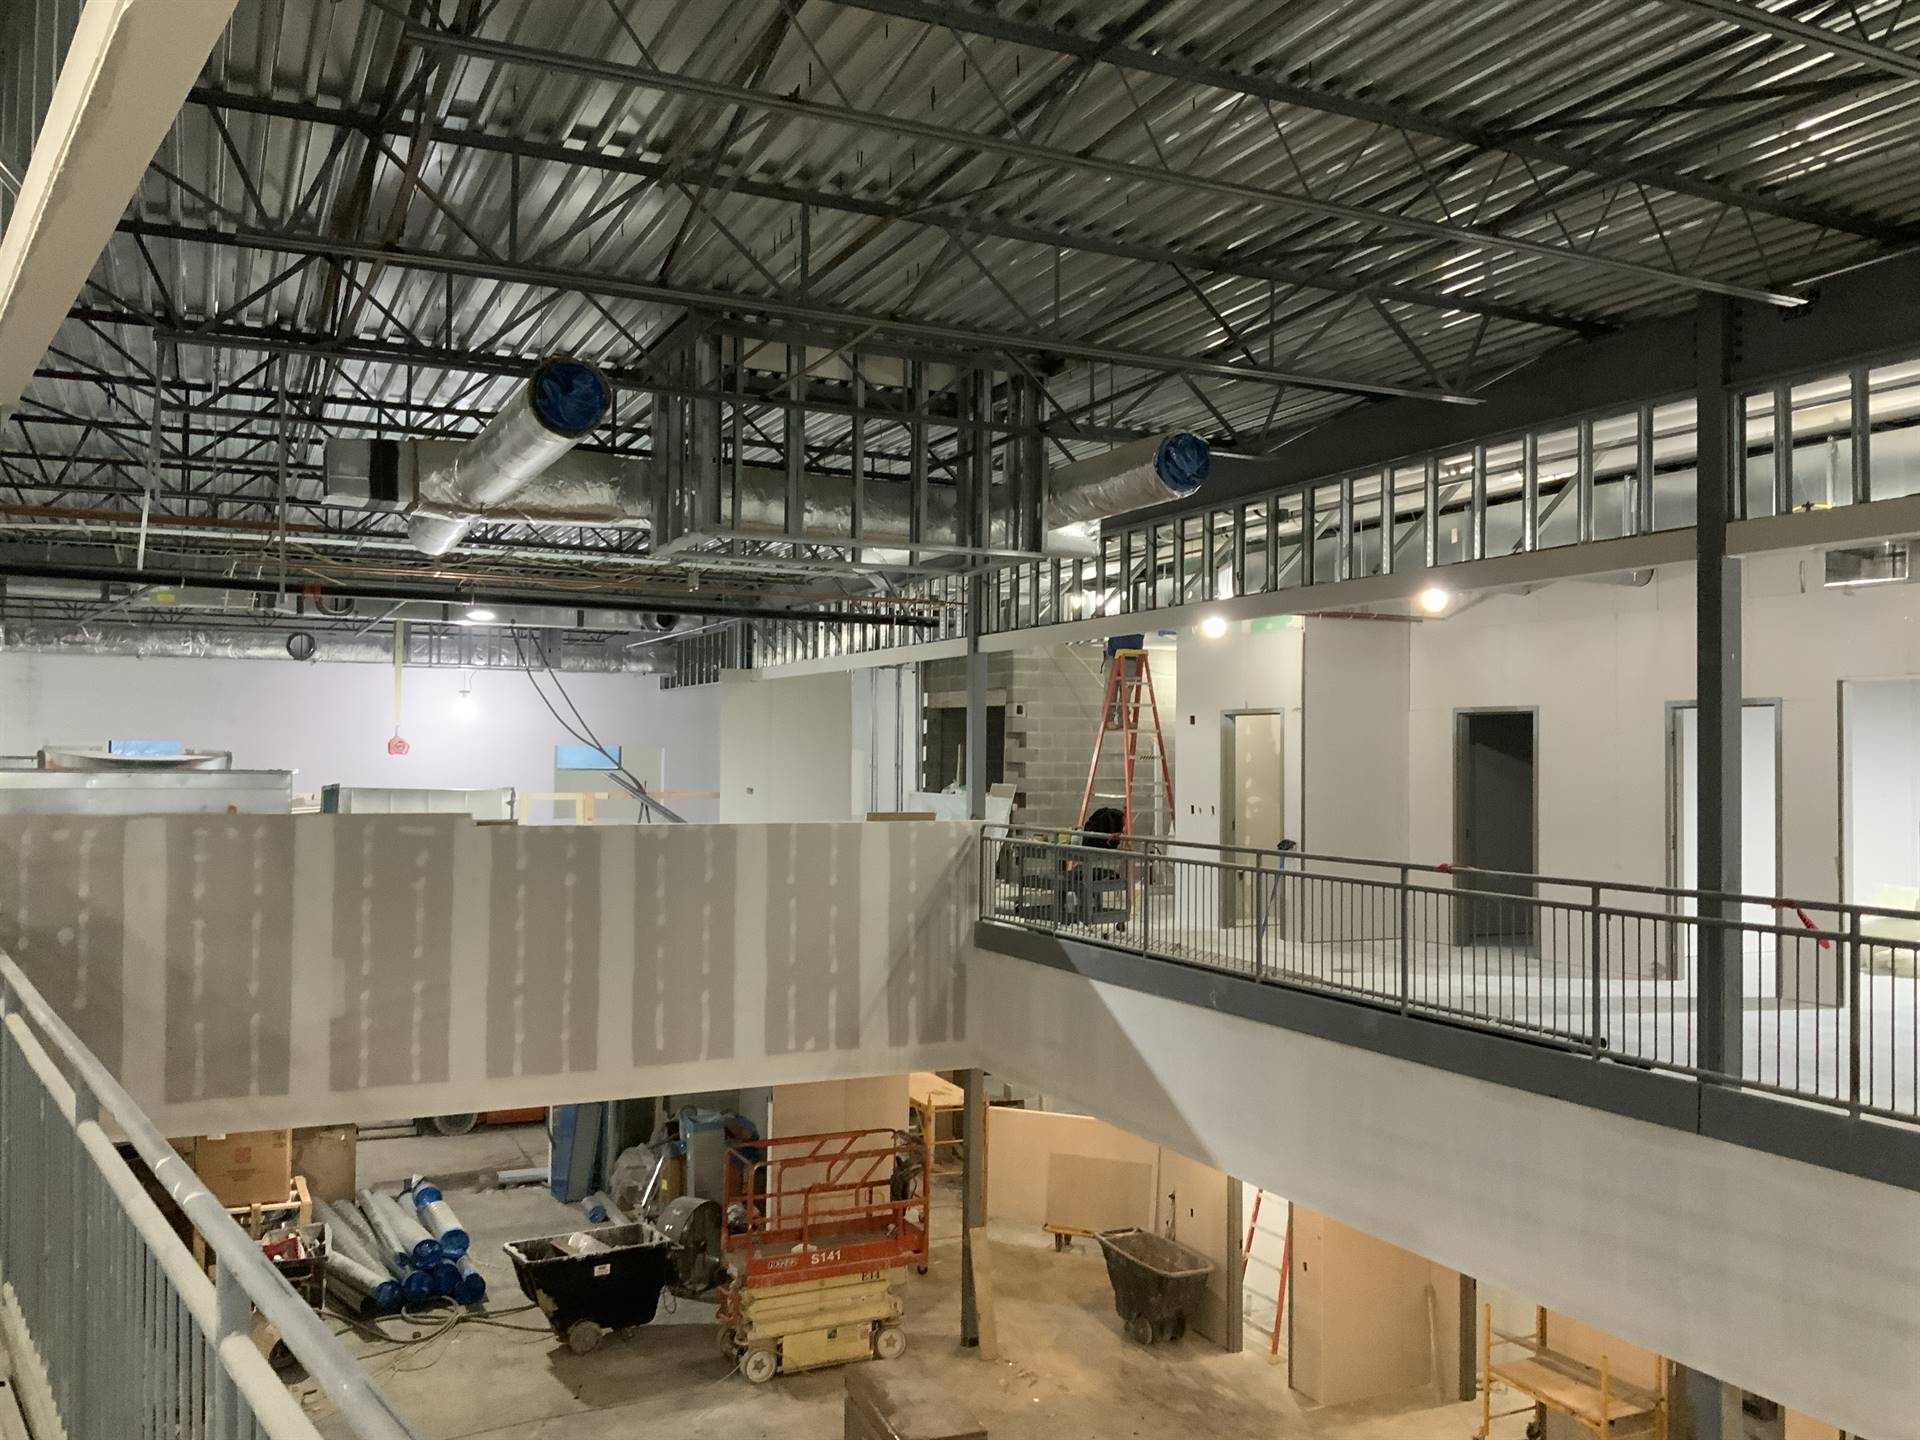 Interior drywall work on the new Greensview Elementary School